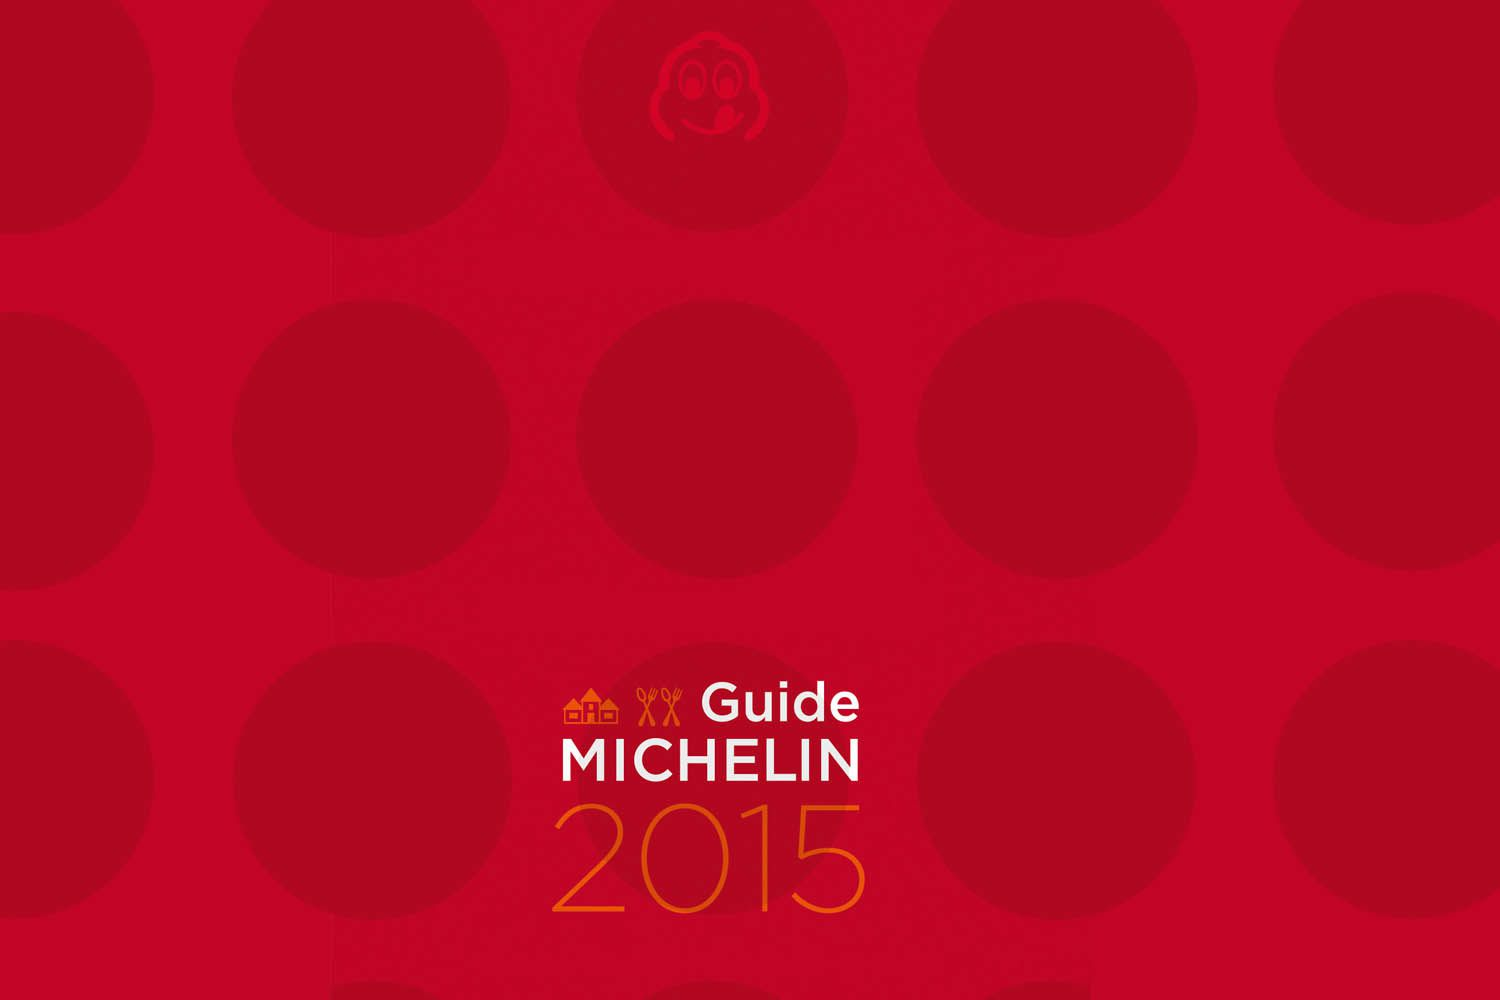 Le Palmarès du guide Michelin 2015.